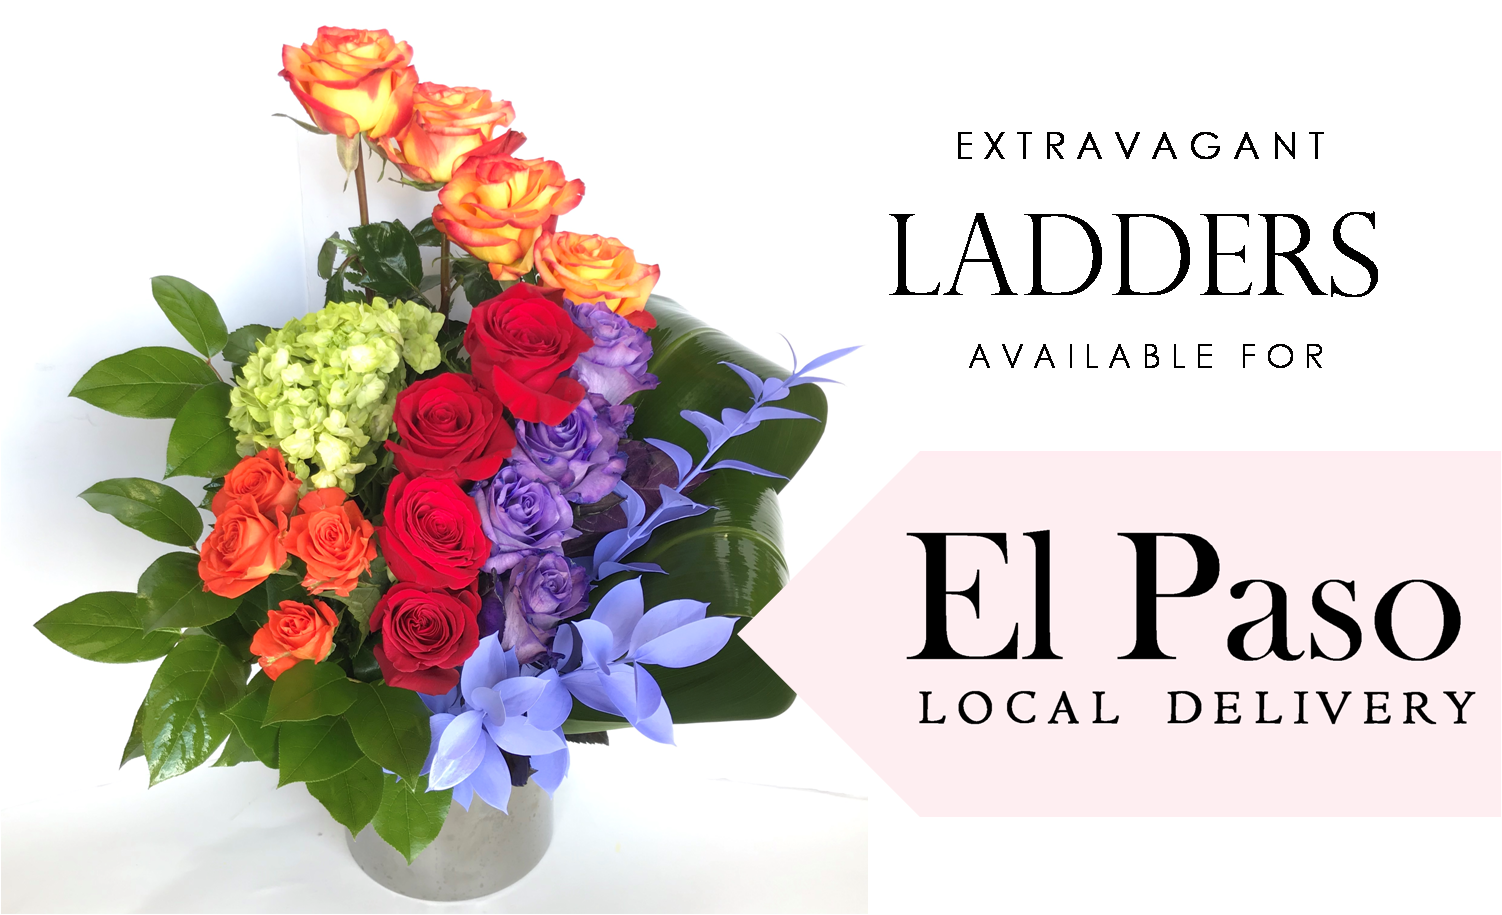 the-angies-floral-designs-el-paso-flowershop-el-paso-florist-79912-bloom-box-divine-chocolate-moet-chandon-ladders-macaroons-flower-arrangements.png